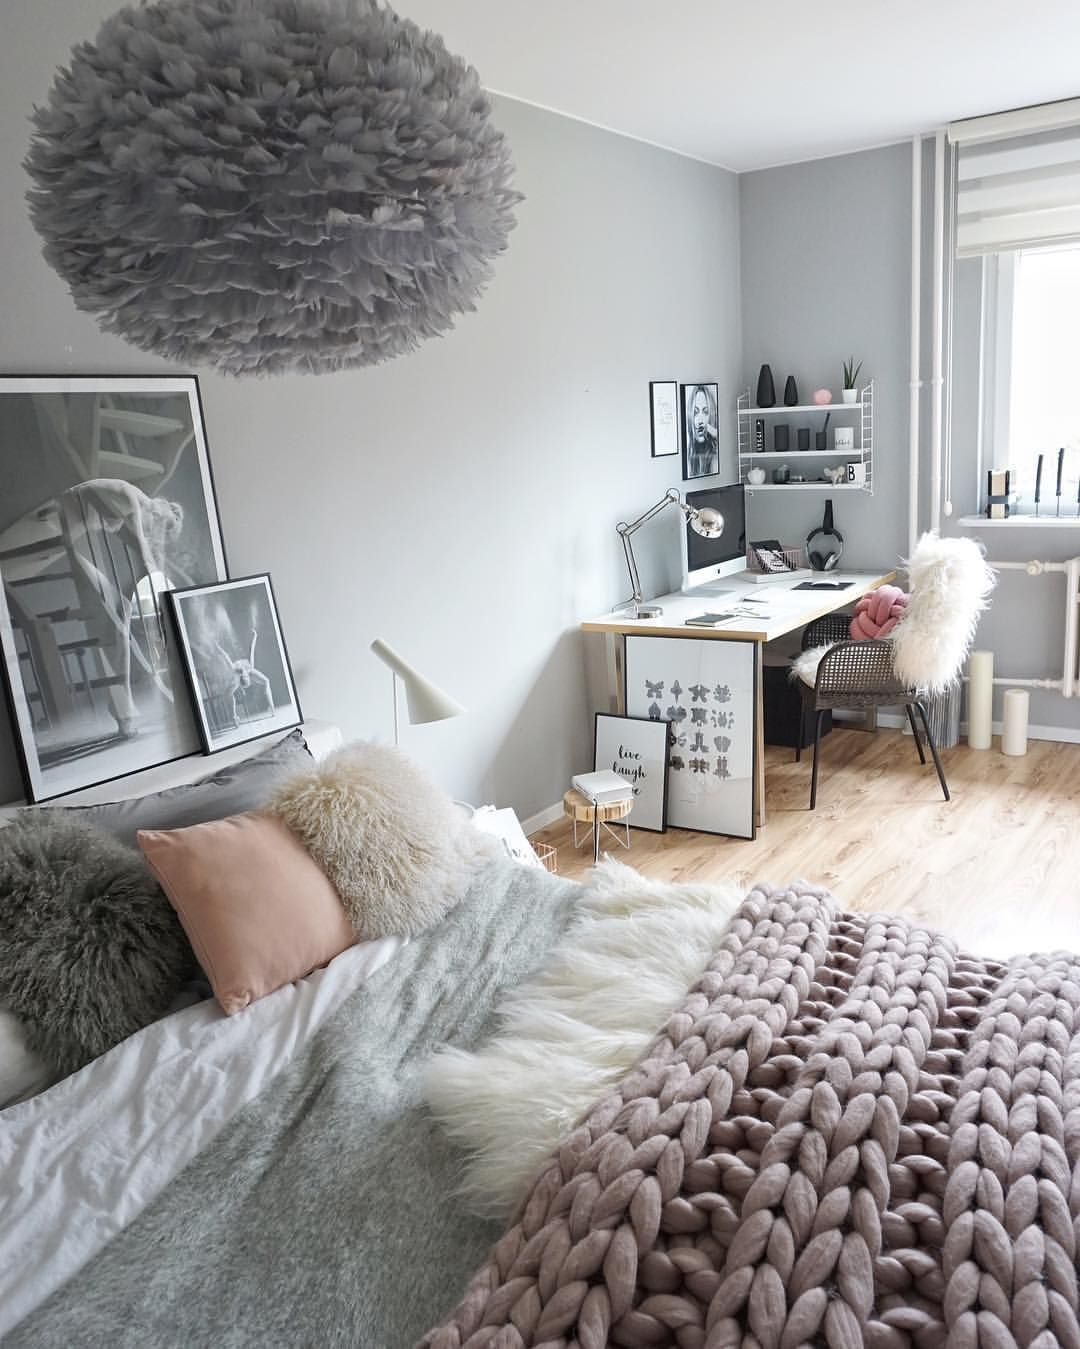 Cute Girl Bedroom Ideas   Your Daughter Will Love A Room Filled With Color,  Patterns